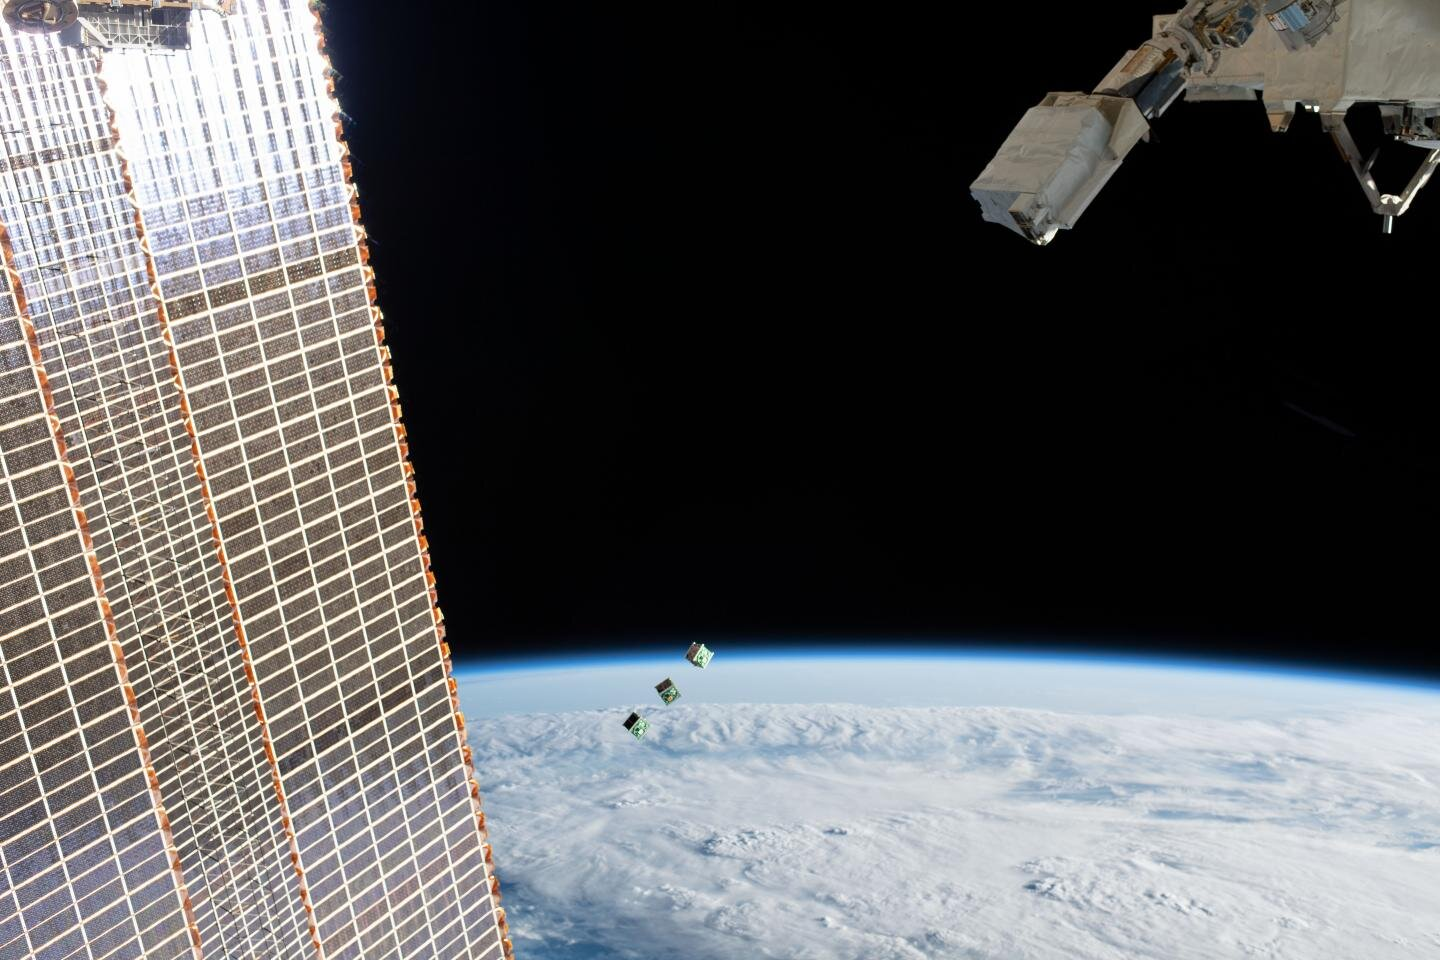 Paraguay's first satellite deployed from the International Space Station